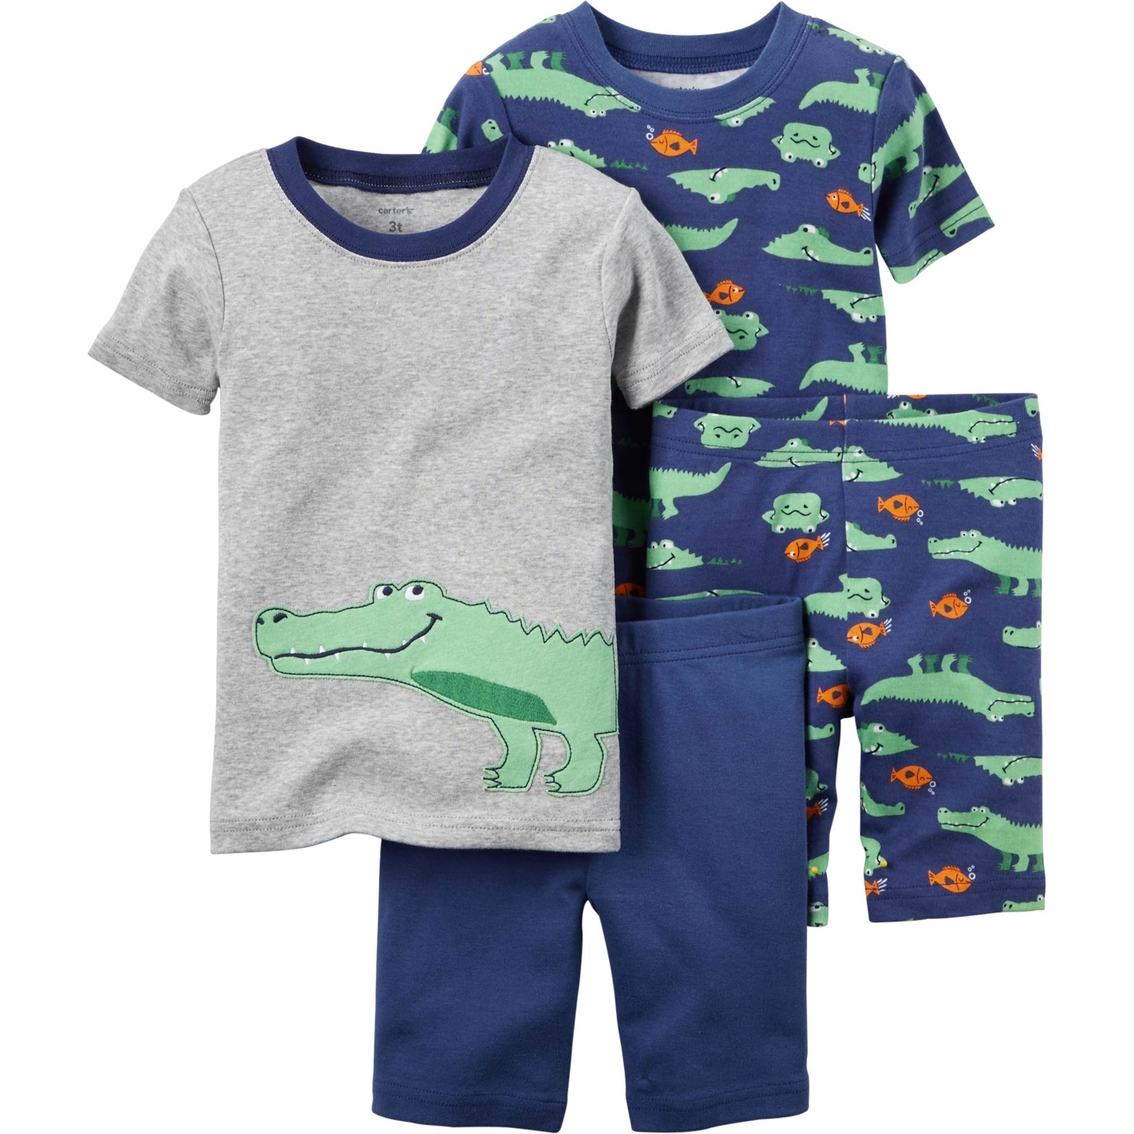 186ea3800837 Carter s Toddler Boys 4 Pc. Alligator Snug Fit Cotton Pajamas ...